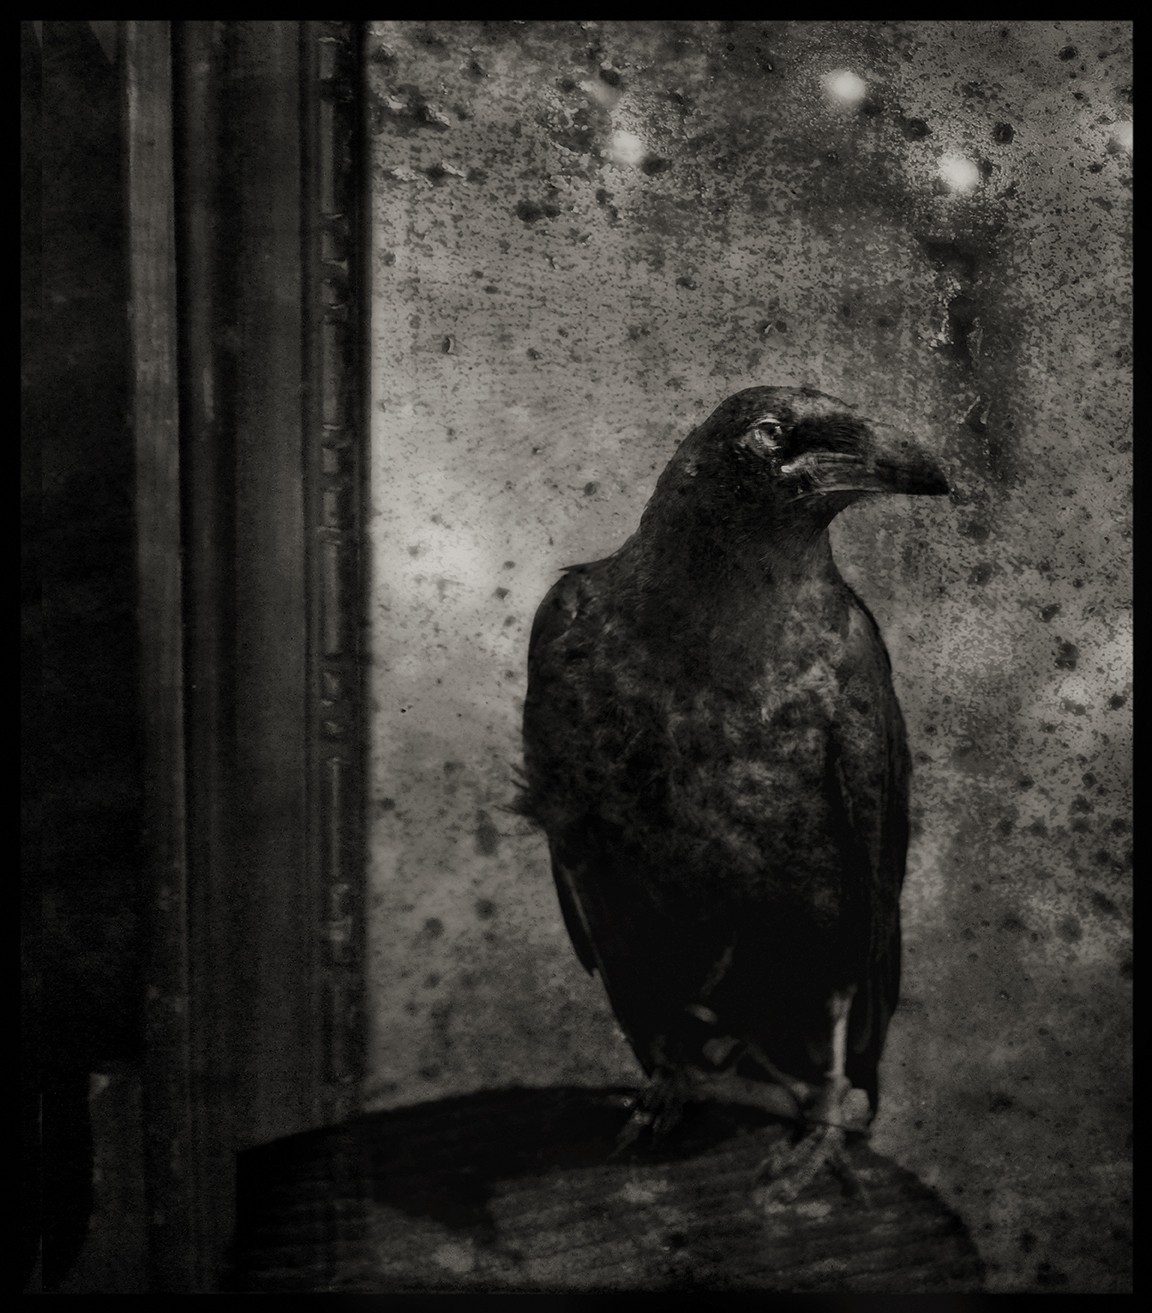 raven on the table